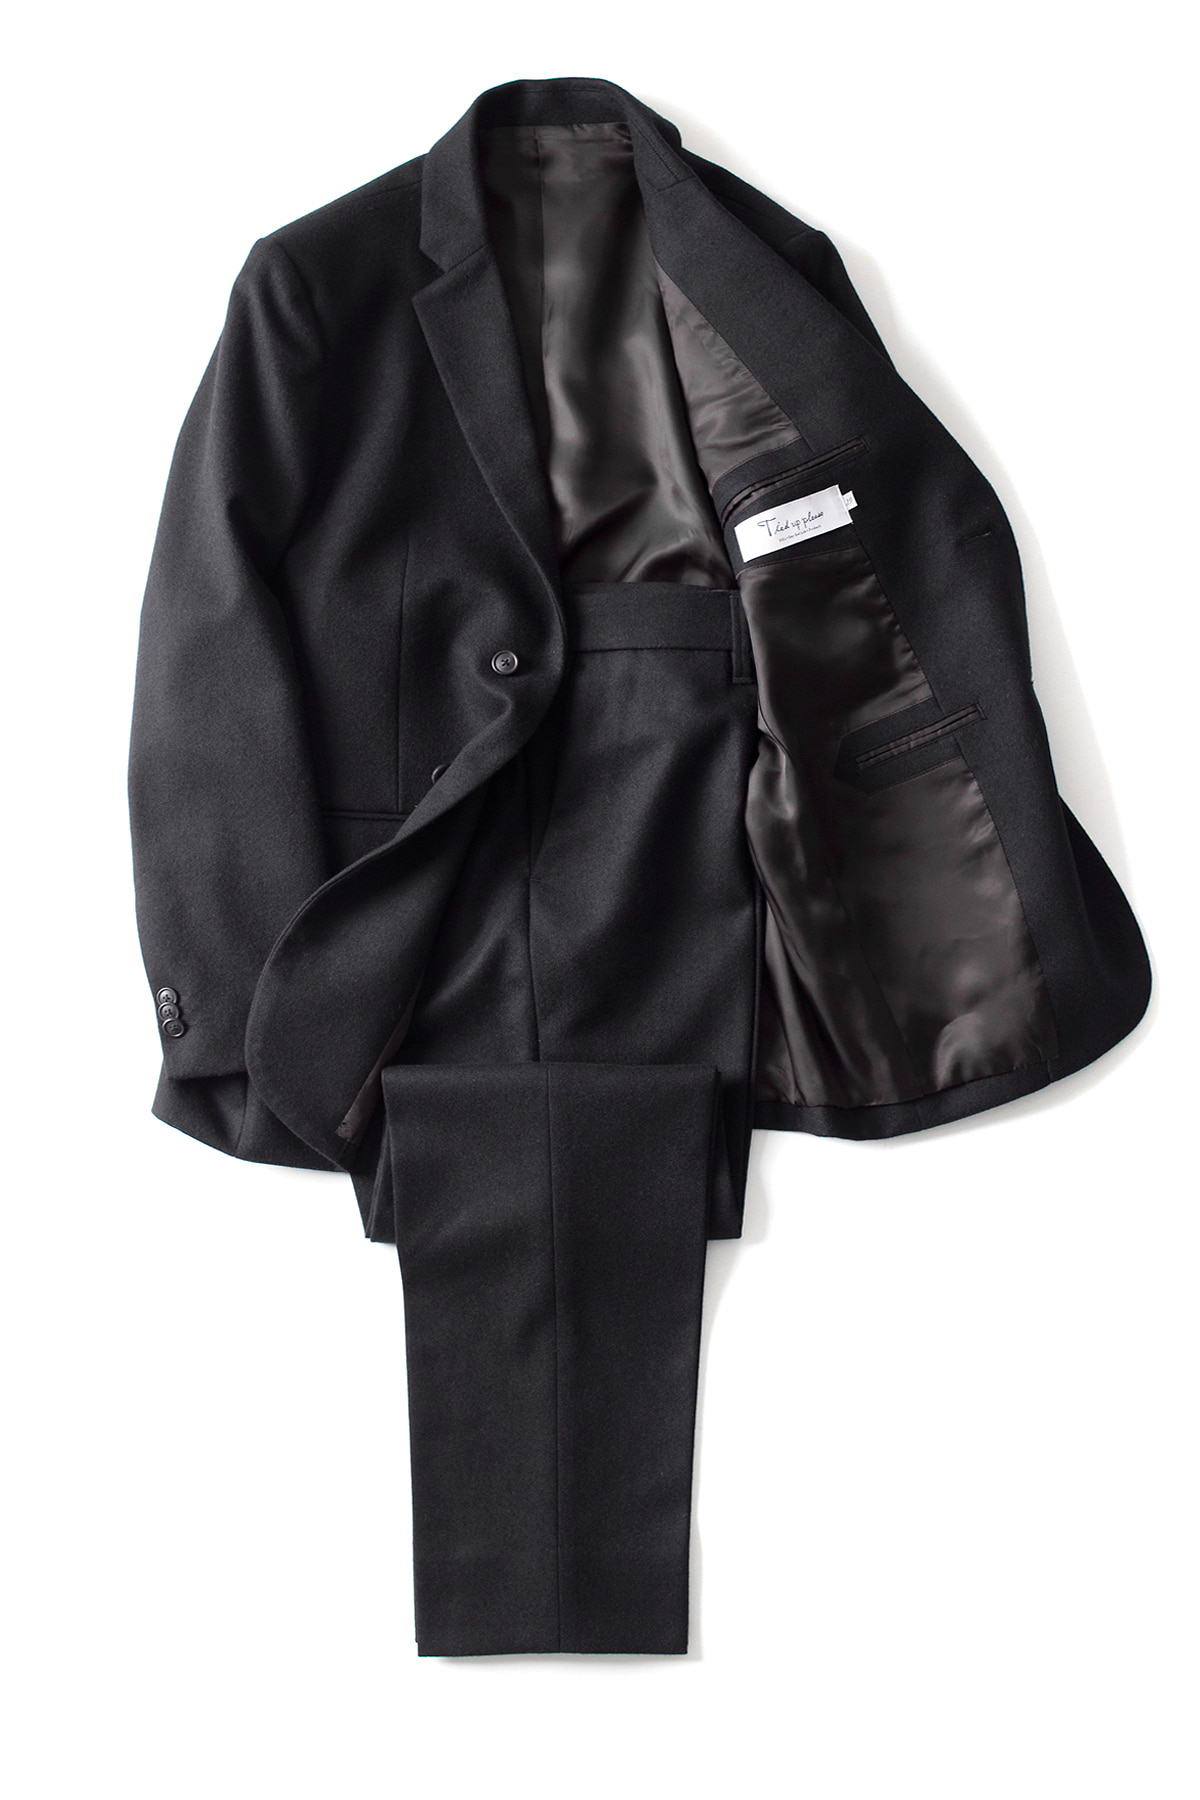 EEL/Tied Up Please : Stylish Man 2piece (Black)